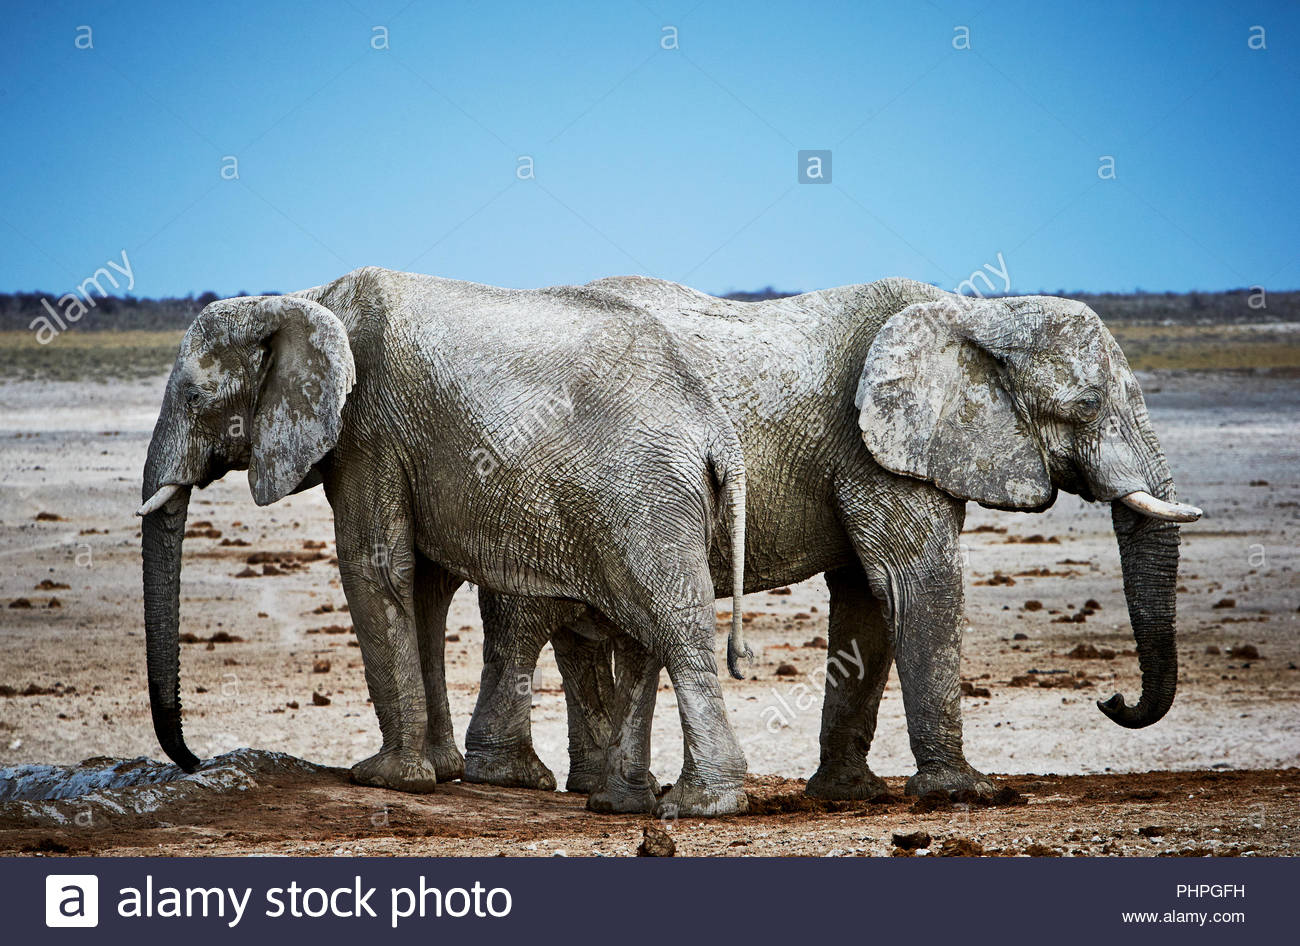 African elephants covered in mud - Stock Image